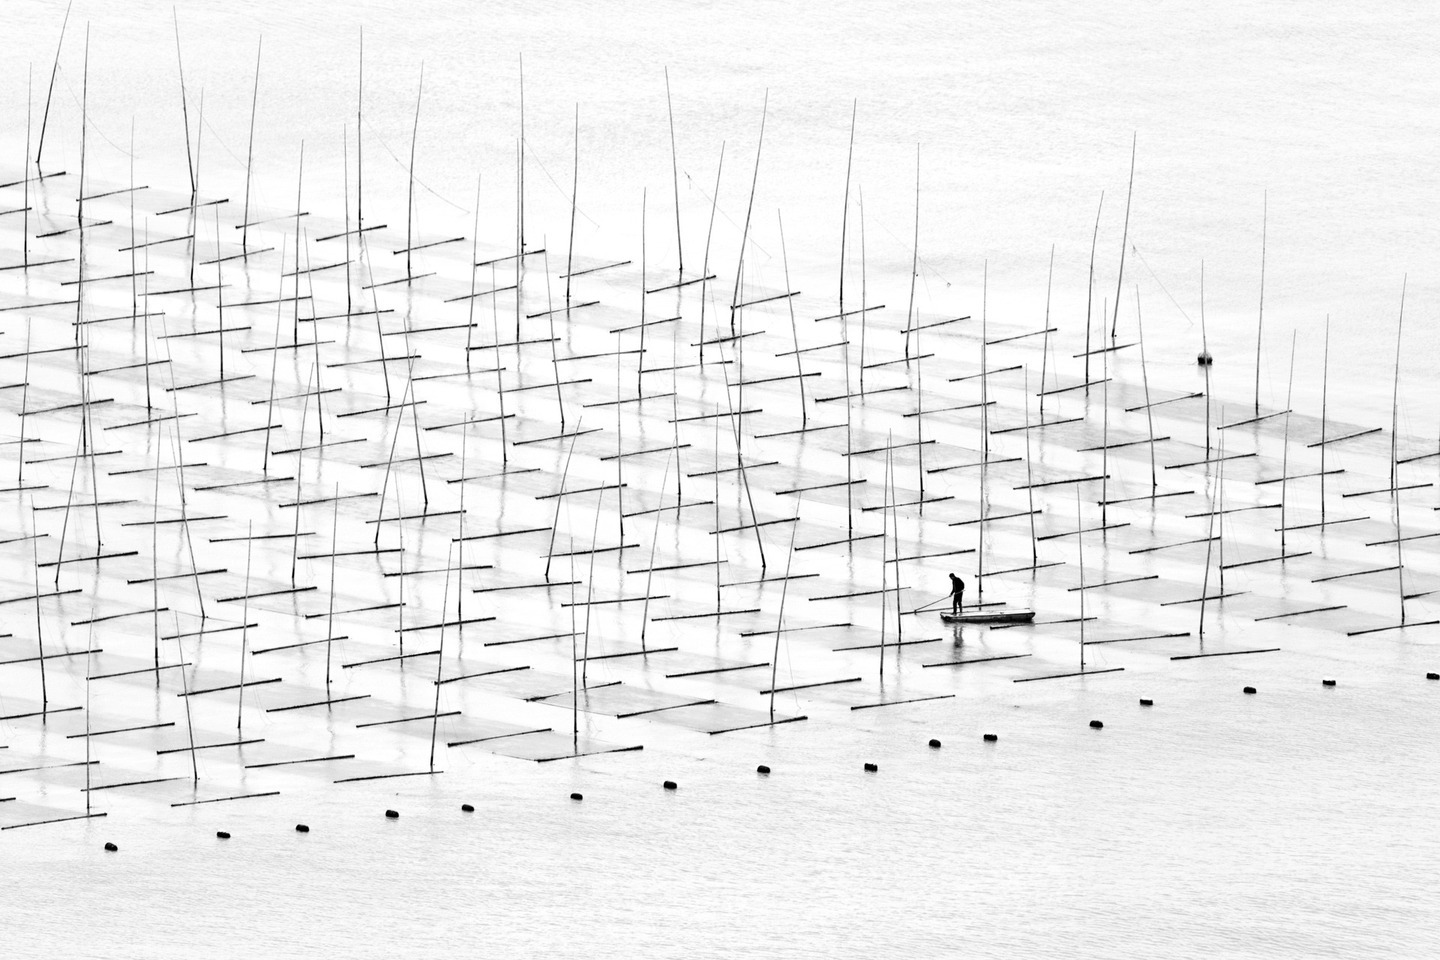 A fisherman is farming the sea in between the bamboo rods constructed for aquaculture off the coast in southern China.